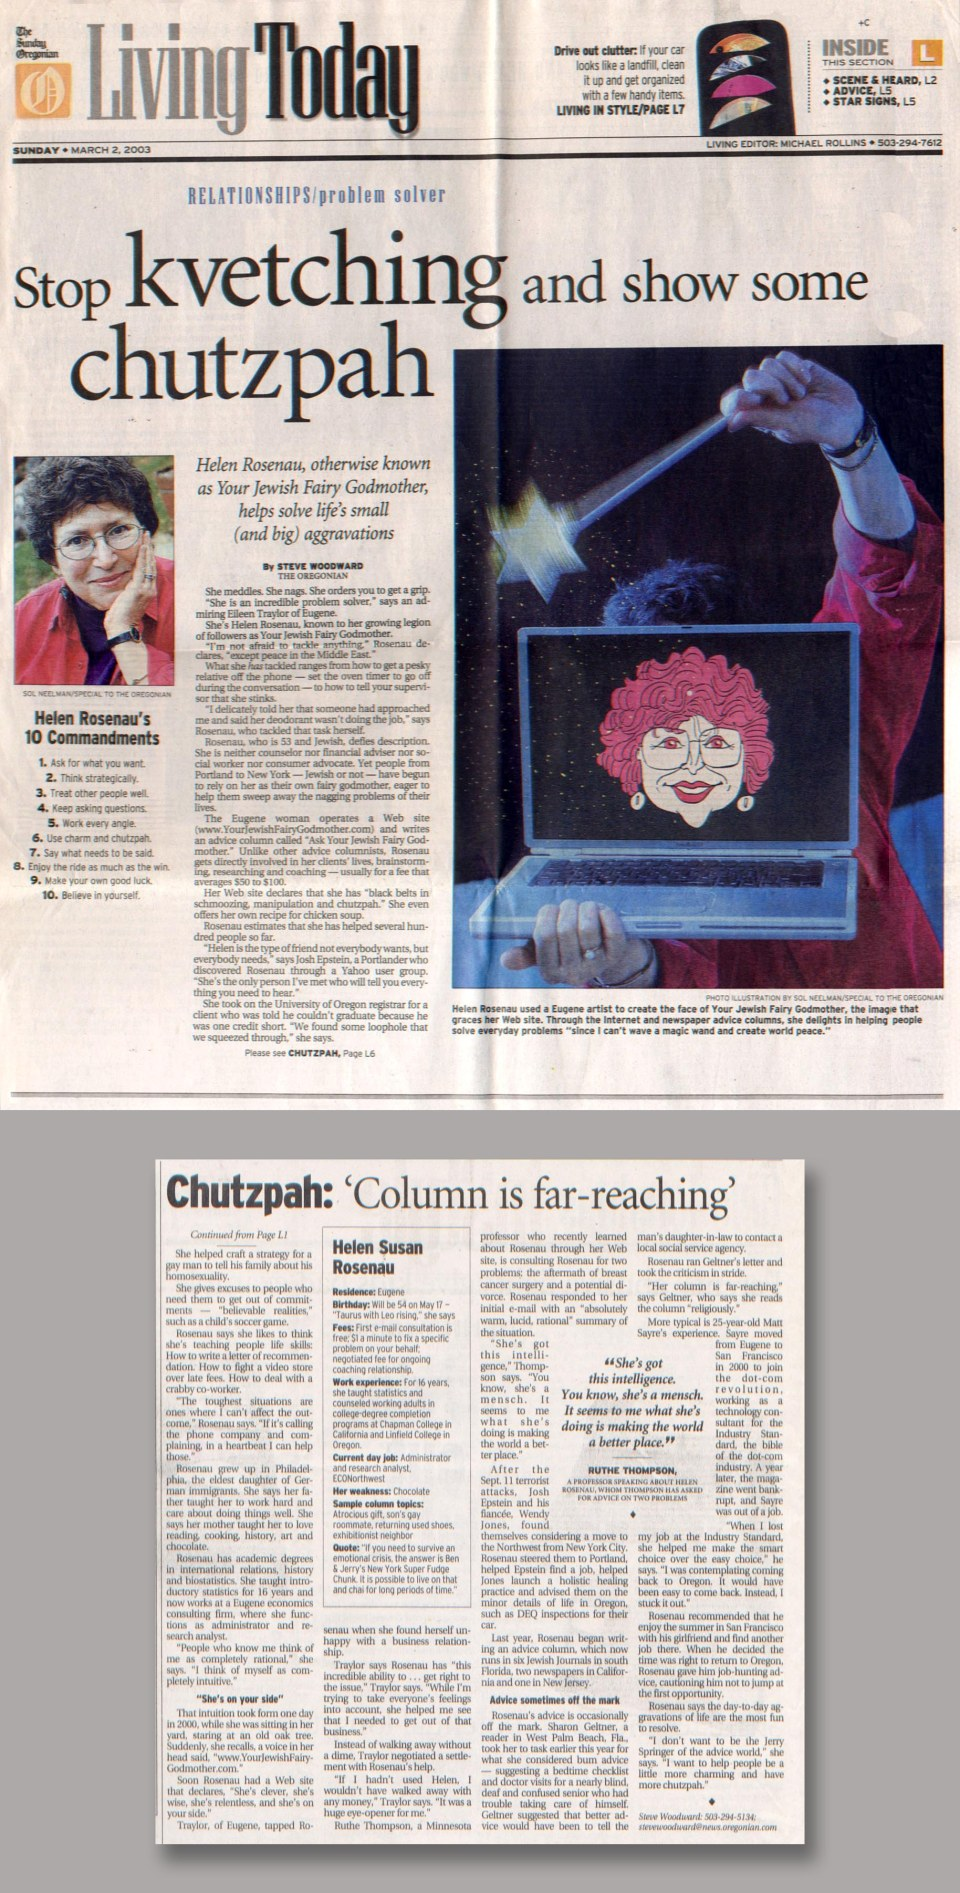 The Oregonian, March 2, 2003: